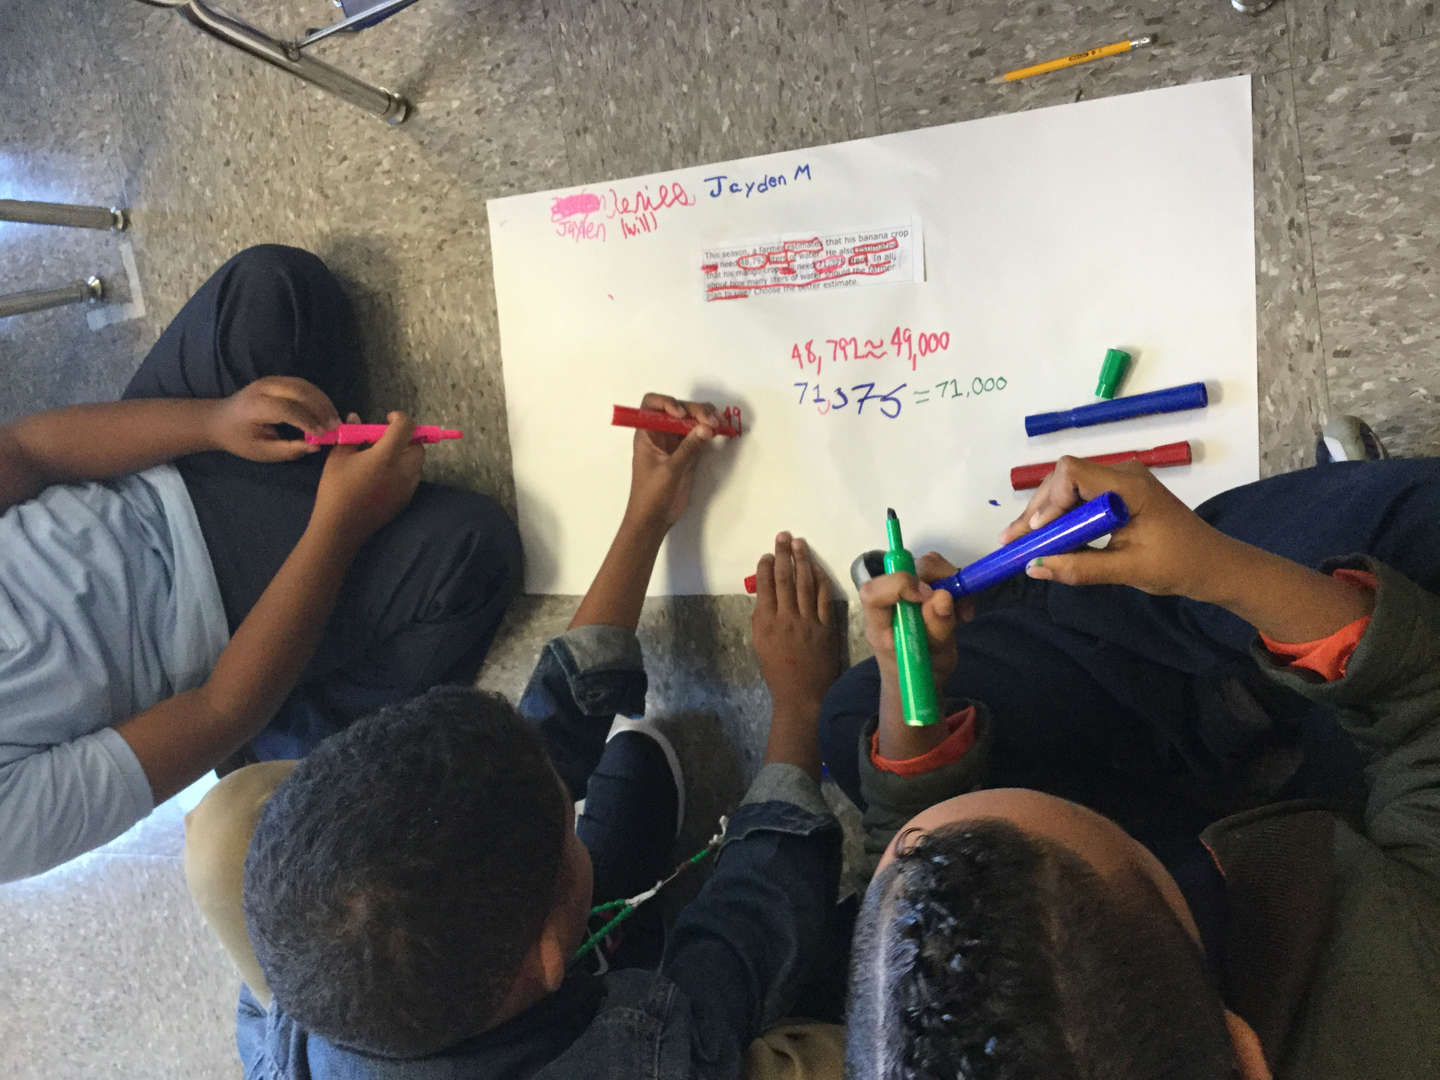 Students working together on math problem